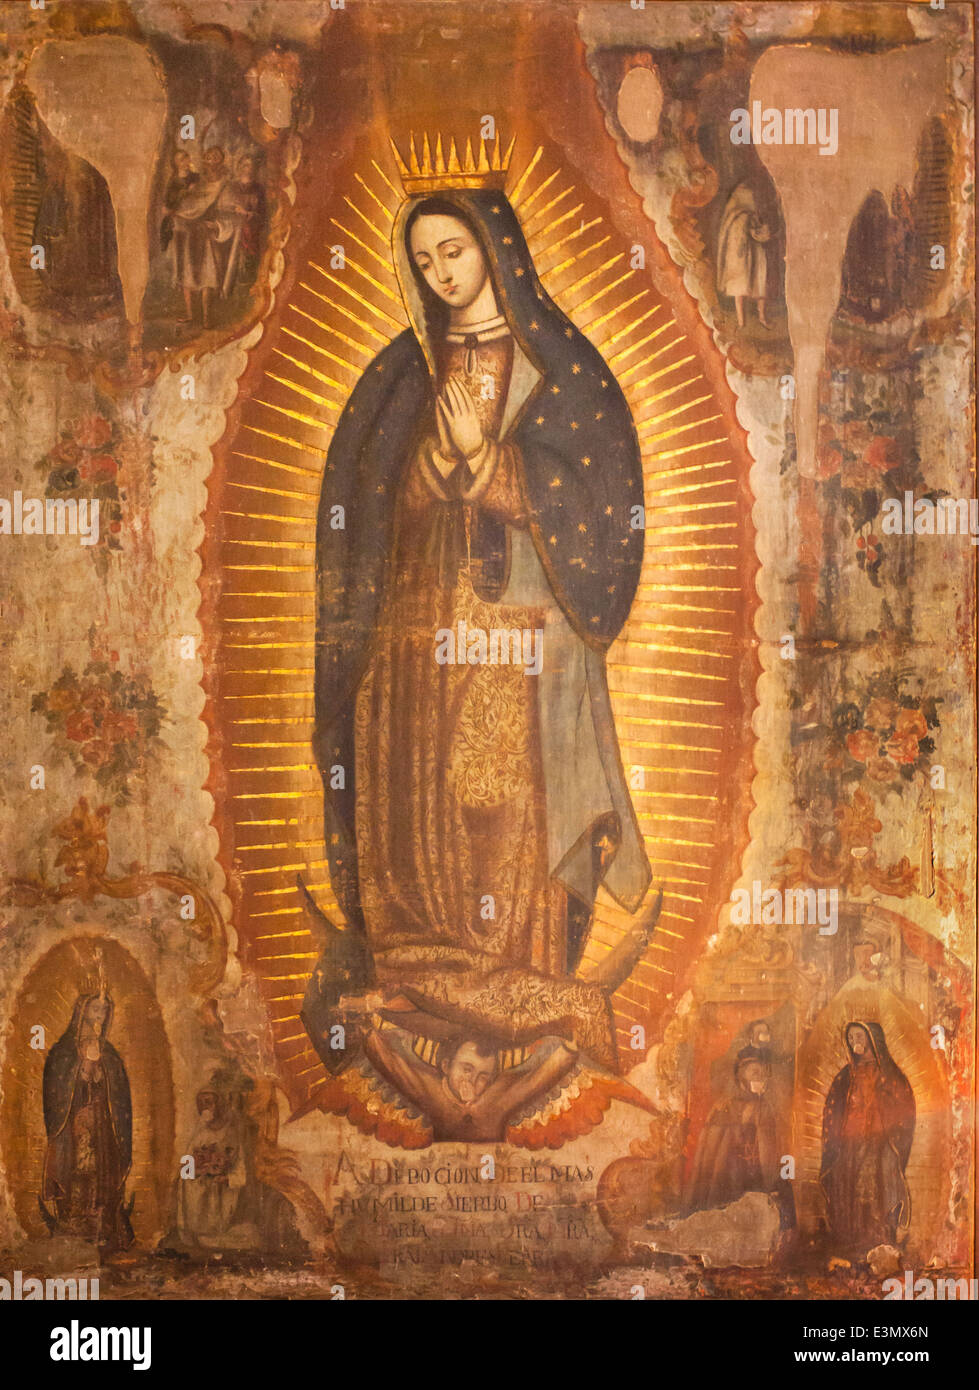 18th century oil painting of the Virgen of Guadalupe in the ex convent of San Agustin, Yuriria, Guanajuato. Artist Stock Photo